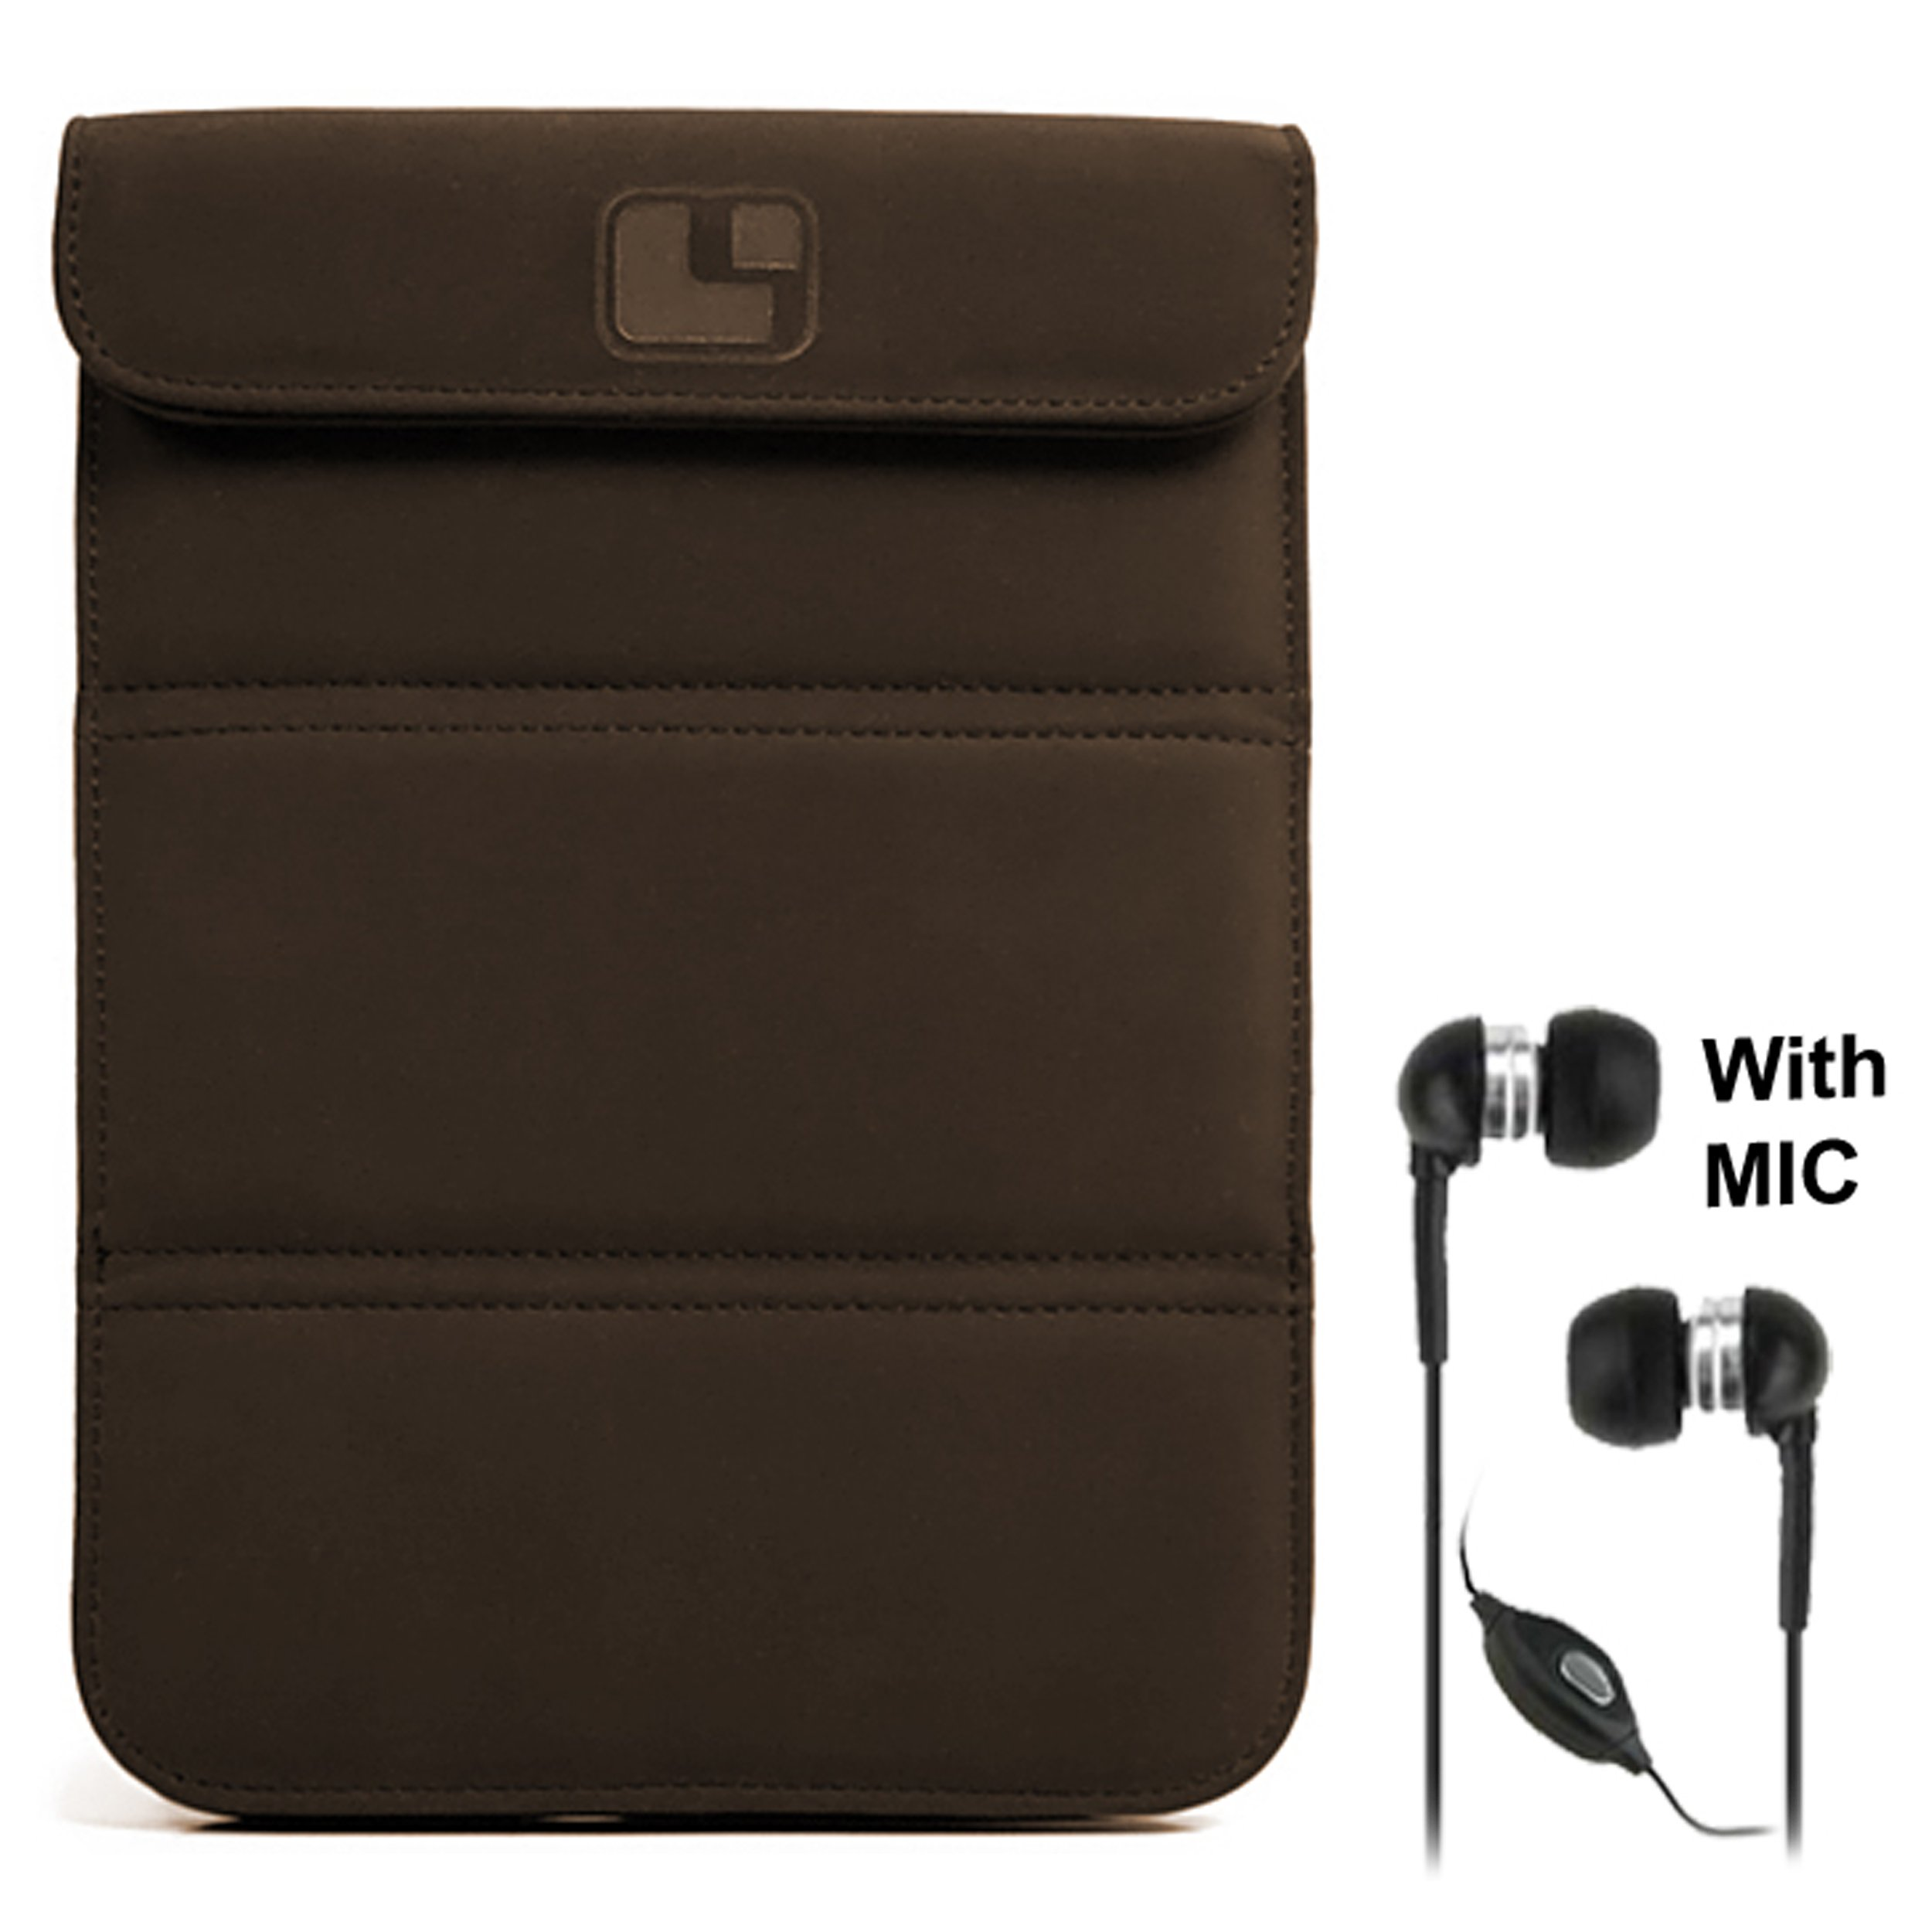 Smart Glove - Brown Premium Durable Leather Cover Sleeve Carrying Case can easily be converted to a stand For Amazon Kindle Touch ( Wi-Fi 6'' E Ink Display ) + Deluxe Stereo Hands-free Headset 3.5mm, with MIC, Black